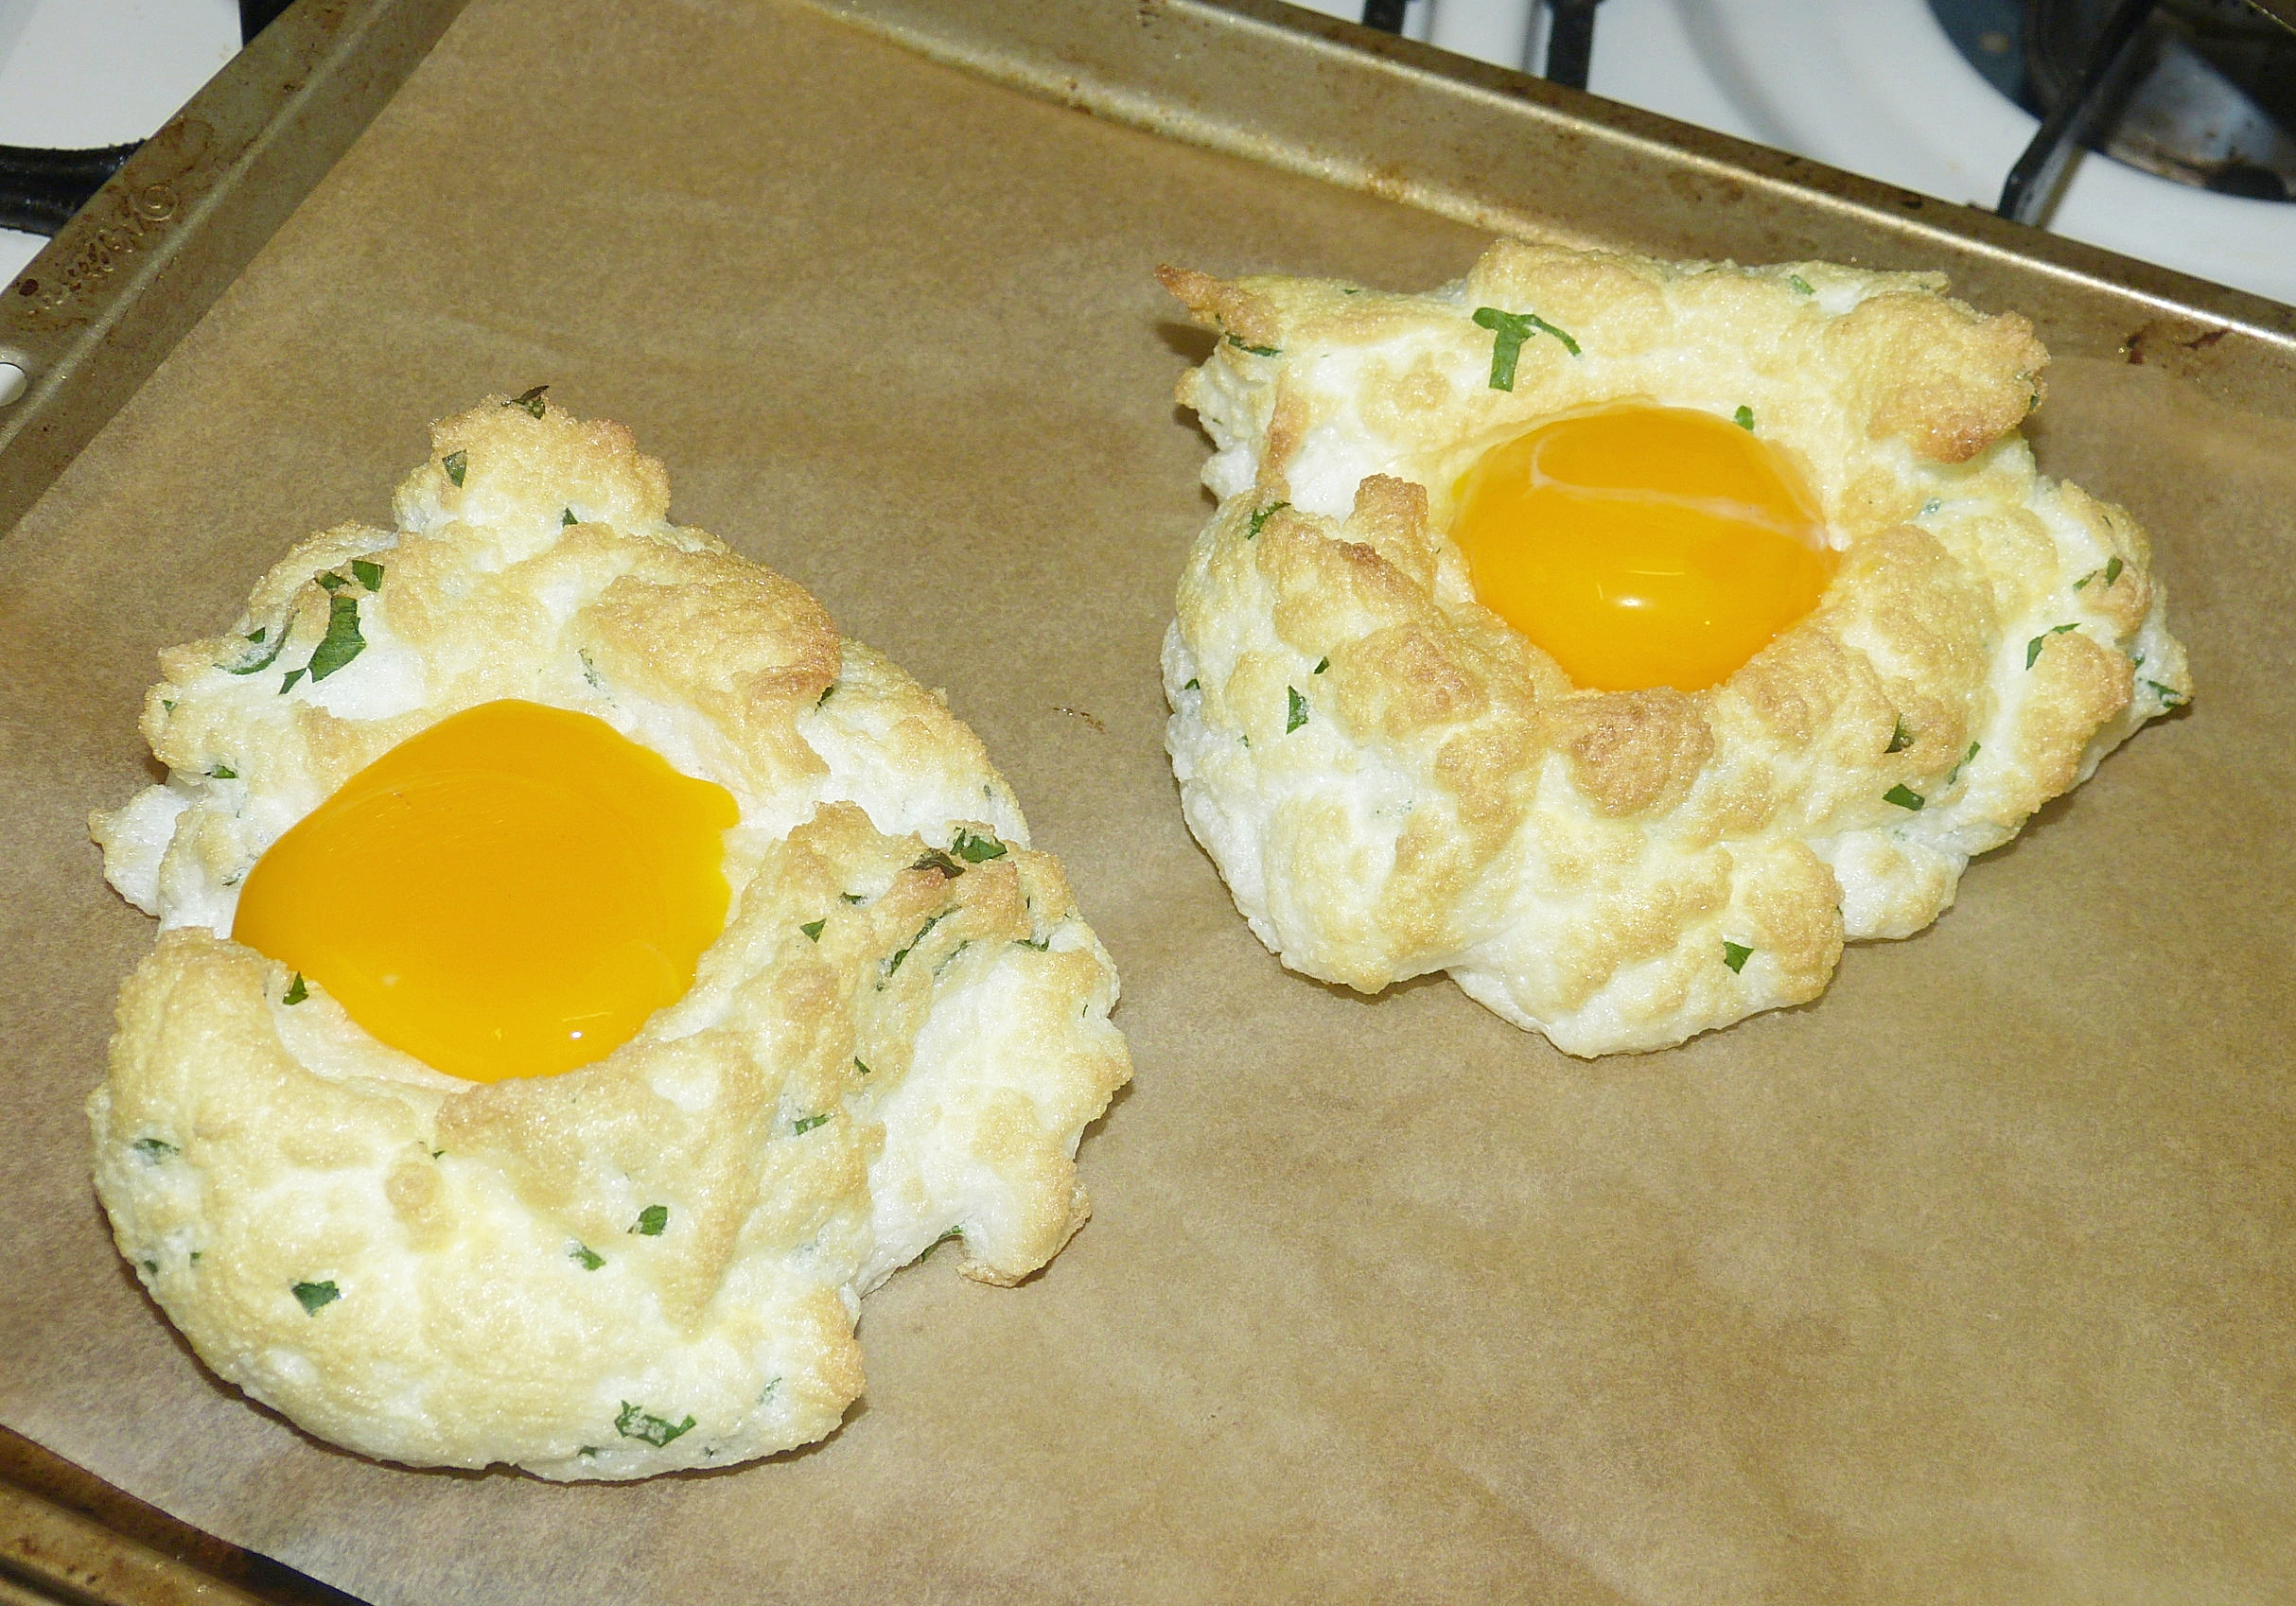 Step 4 - Remove from oven and place yolks into the center of each